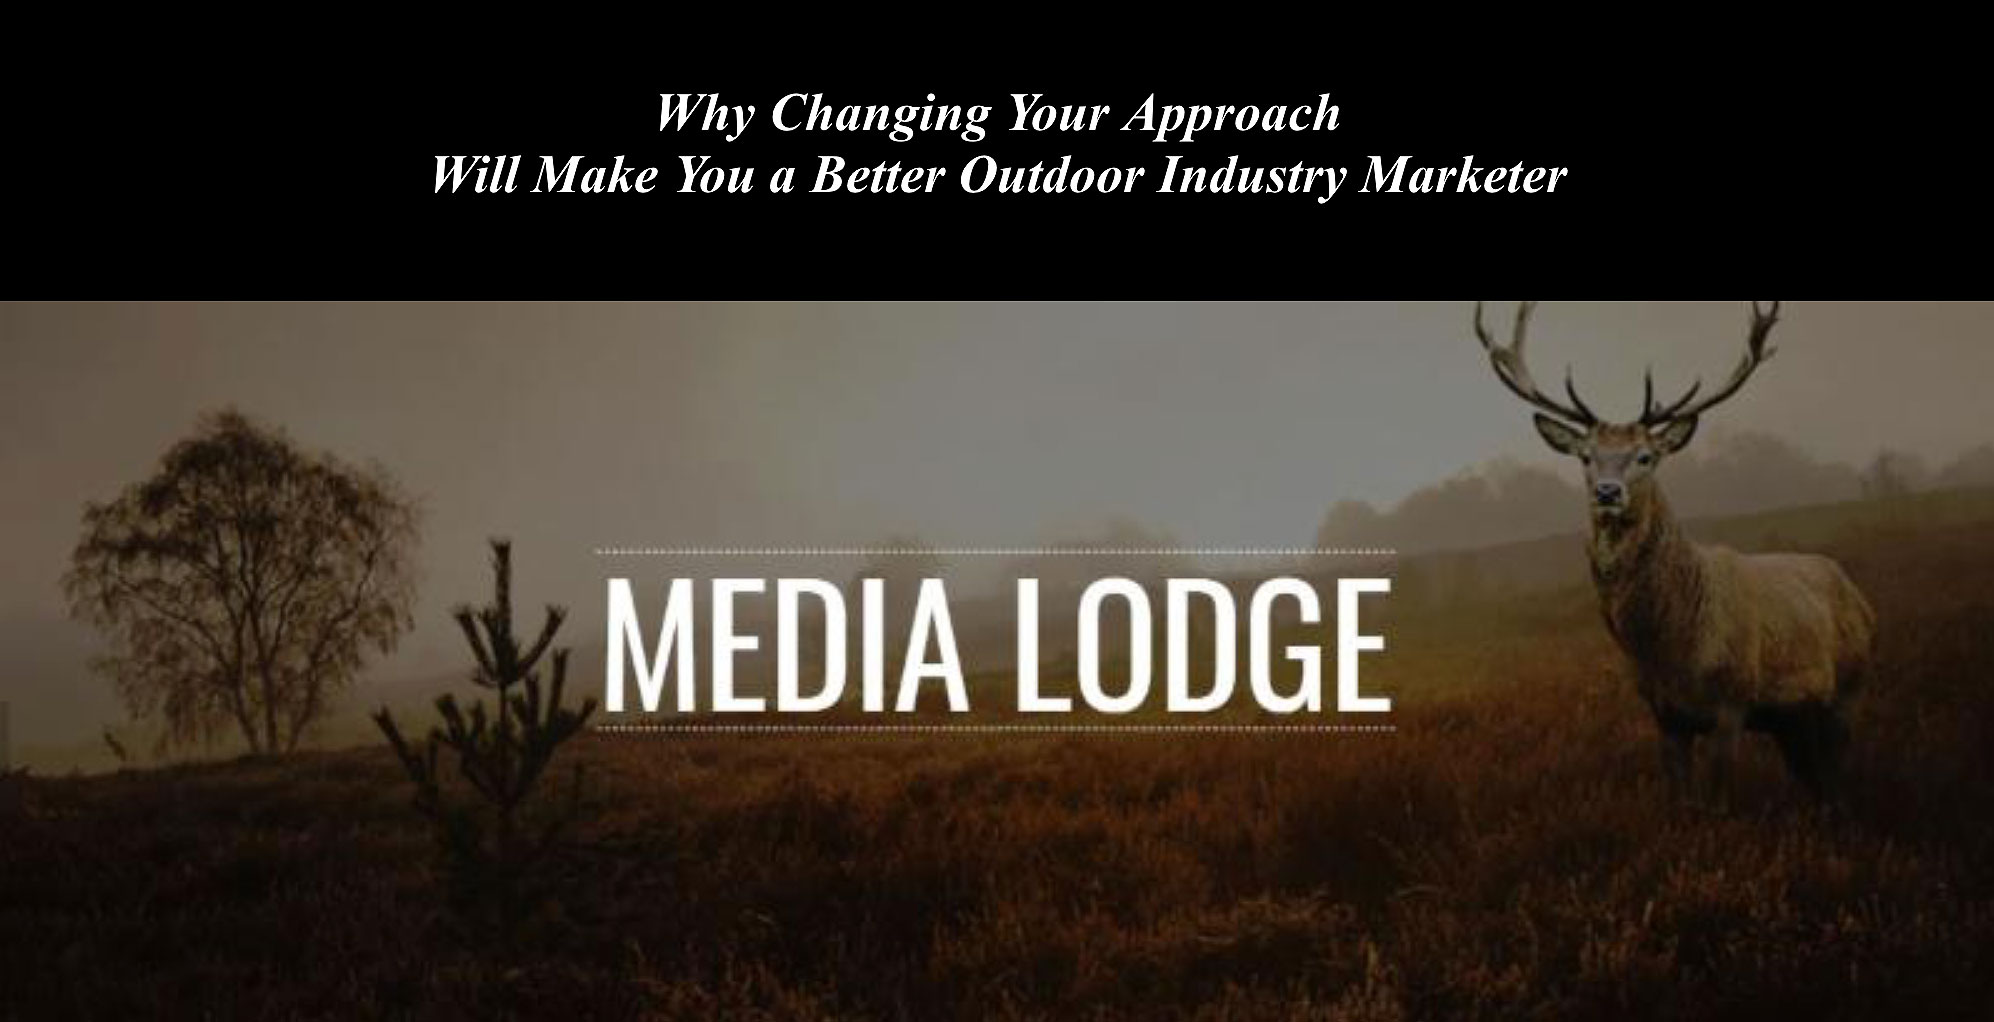 MediaLodge_Change_Your_Approach_Outdoor_Industry